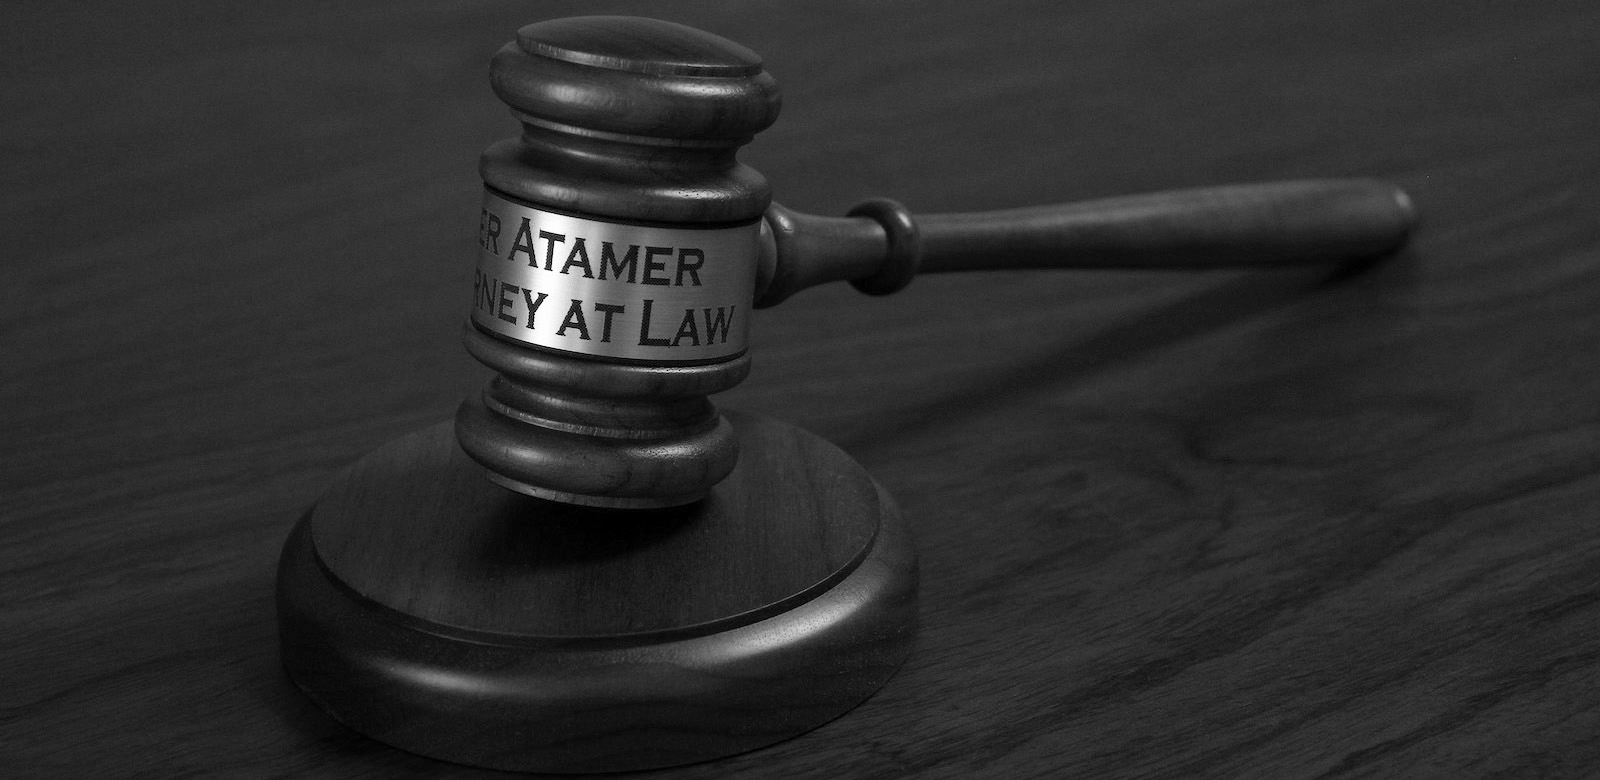 atamer law firm